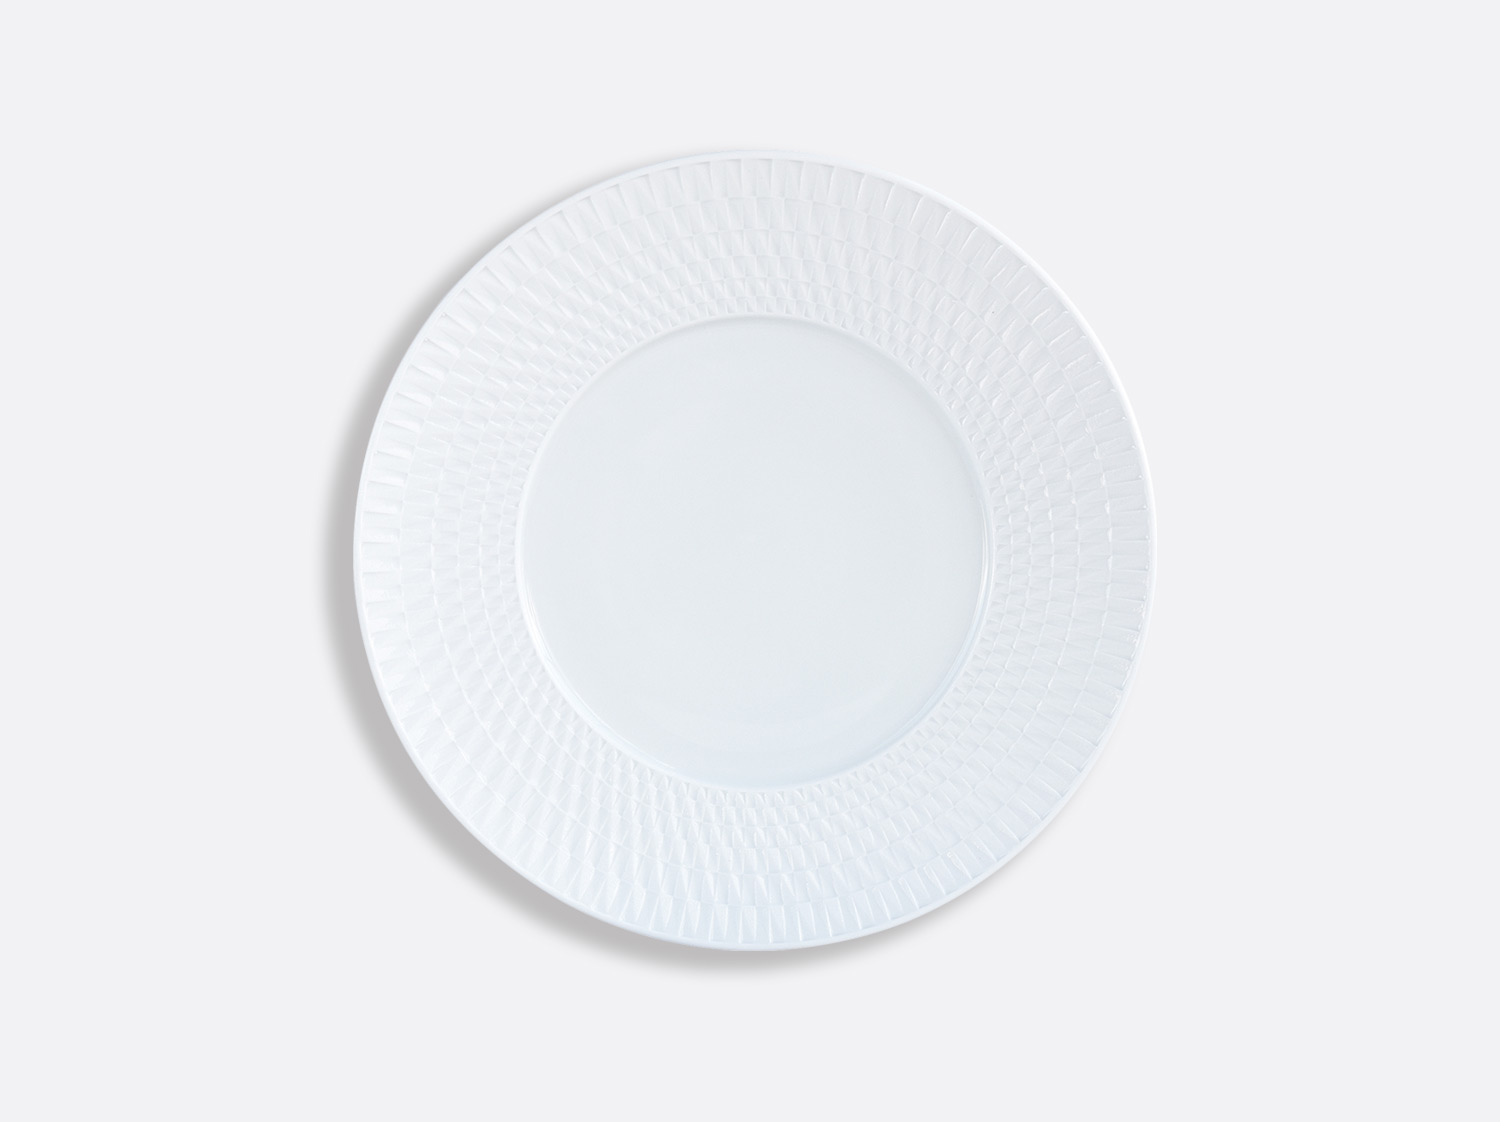 Assiette à dessert 21 cm en porcelaine de la collection Twist Bernardaud